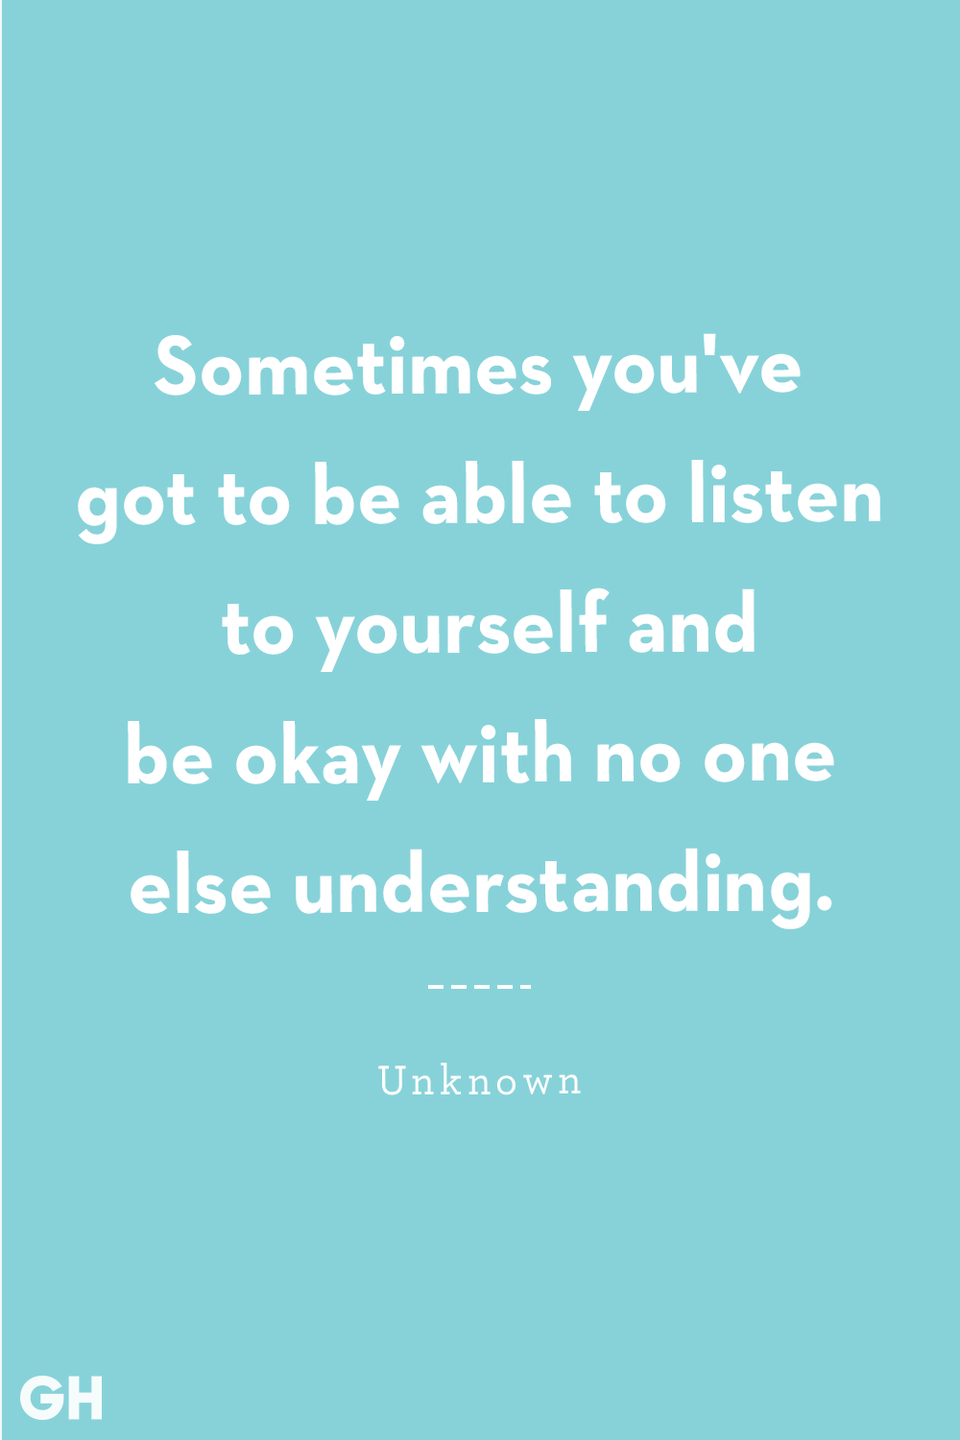 <p>Sometimes you've got to be able to listen to yourself and be okay with no one else understanding.</p>